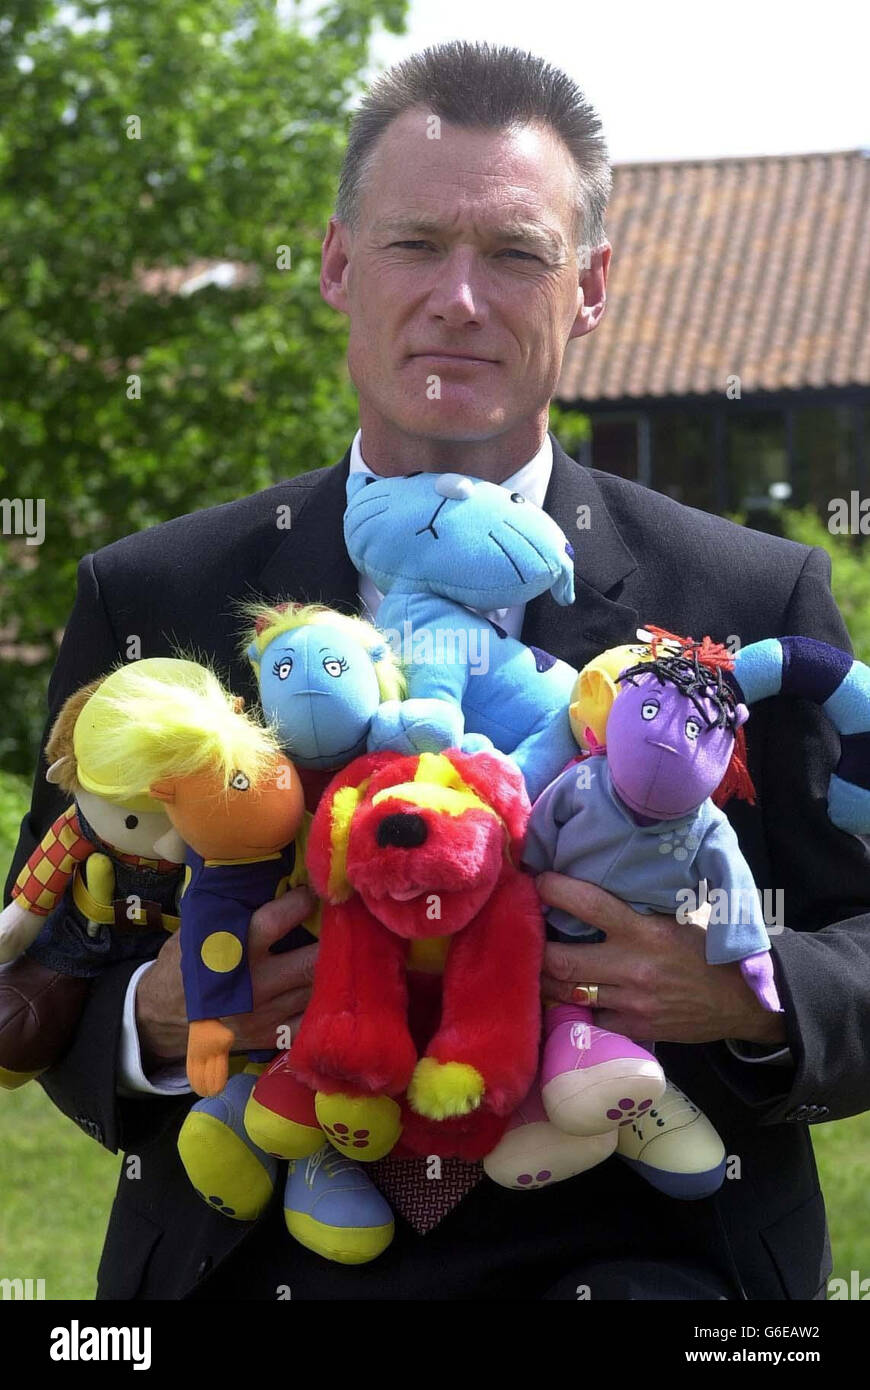 Steve Holland hold counterfeit toys - Stock Image